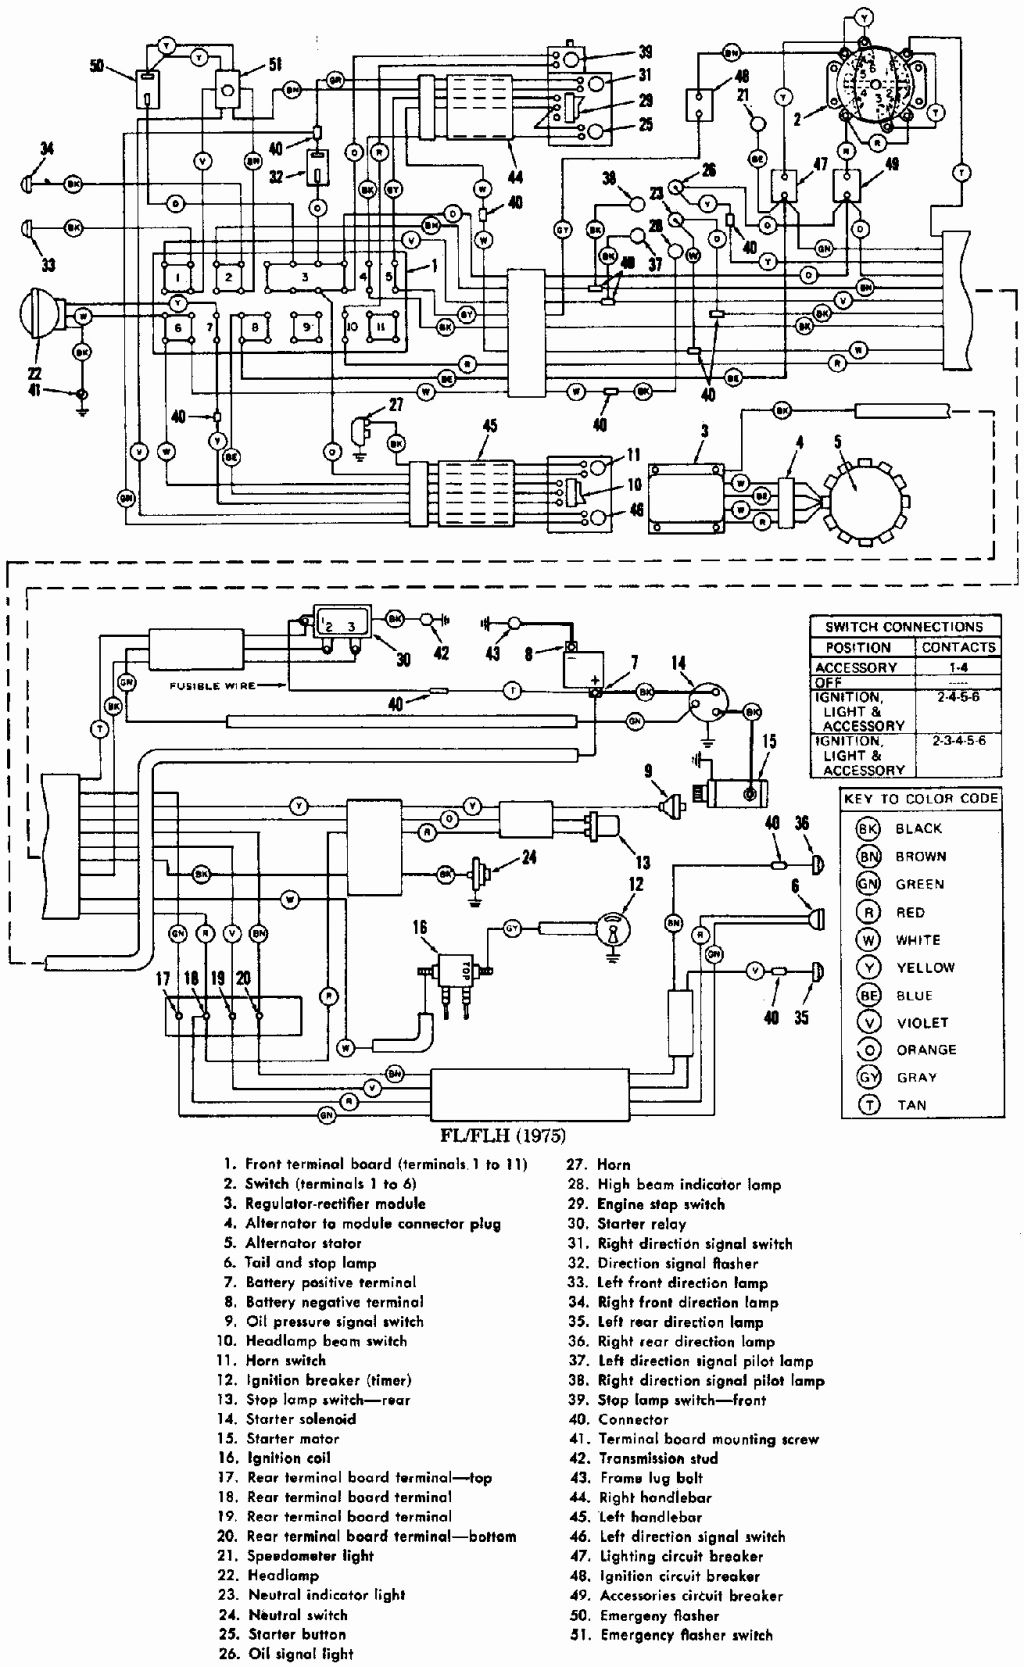 2003 hd wiring diagram 2000 hd wiring diagram harley davidson radio wiring diagram | free wiring diagram #12